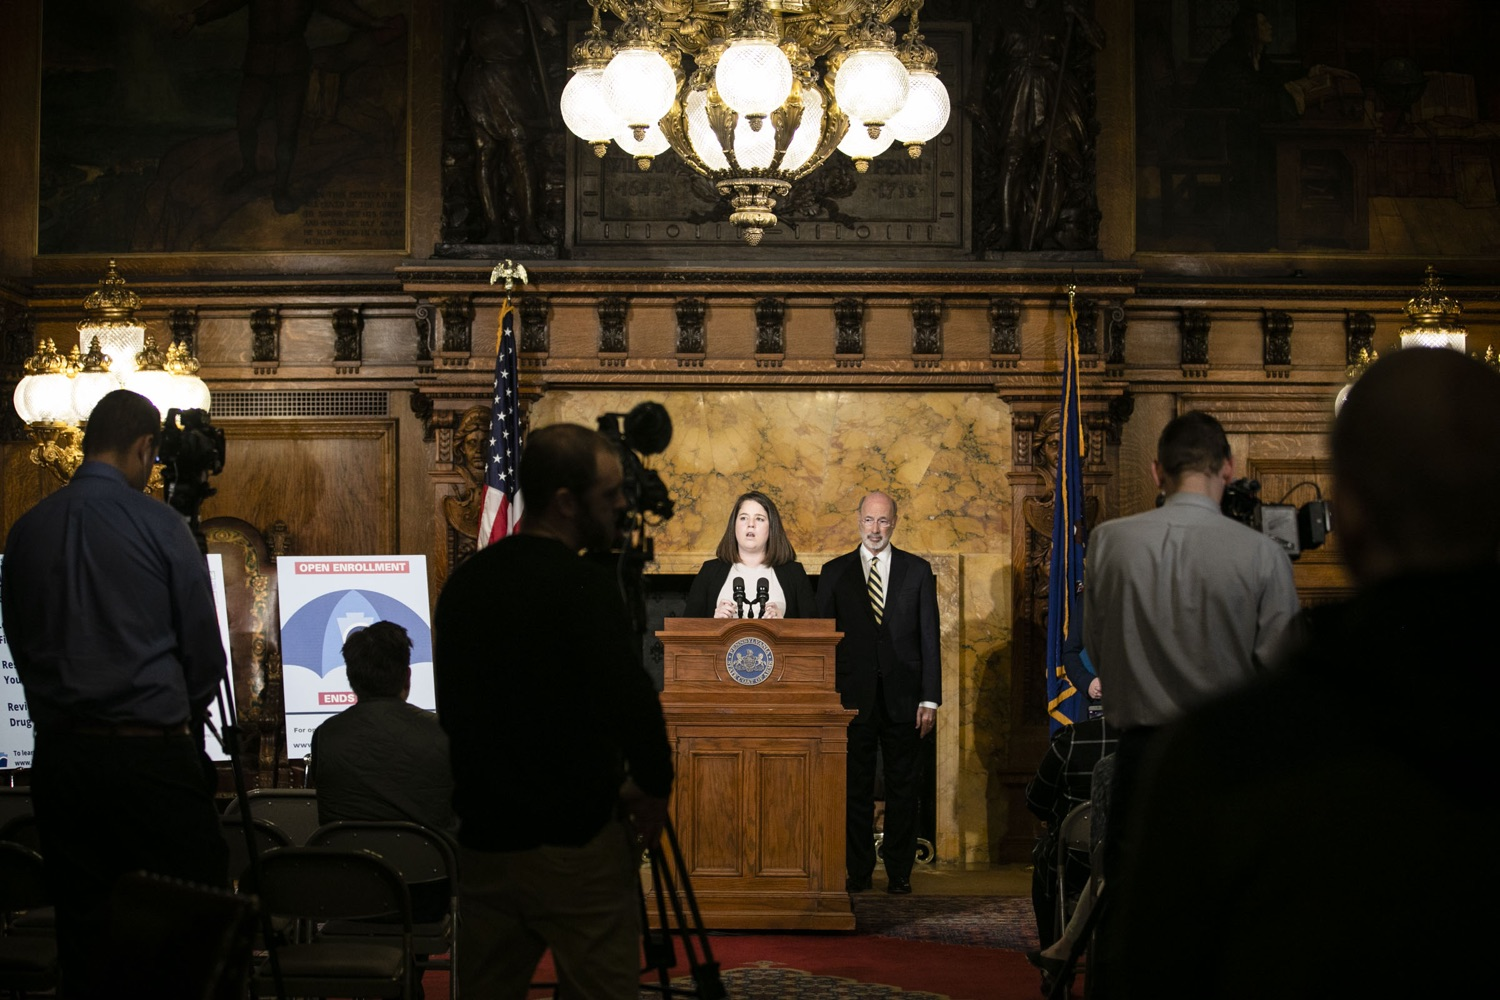 "<a href=""http://filesource.abacast.com/commonwealthofpa/photo/17564_GOV_aca_amb_010.jpg"" target=""_blank"">⇣ Download Photo<br></a>Governor Tom Wolf and Insurance Commissioner Jessica Altman advised Pennsylvanians that now is the time to buy health insurance on the federal exchange, healthcare.gov, as open enrollment continues for Affordable Care Act (ACA) plans through Dec. 15. Consumers have more options in Pennsylvania, and many will find they qualify for subsidies. November 7, 2019. Harrisburg, PA."